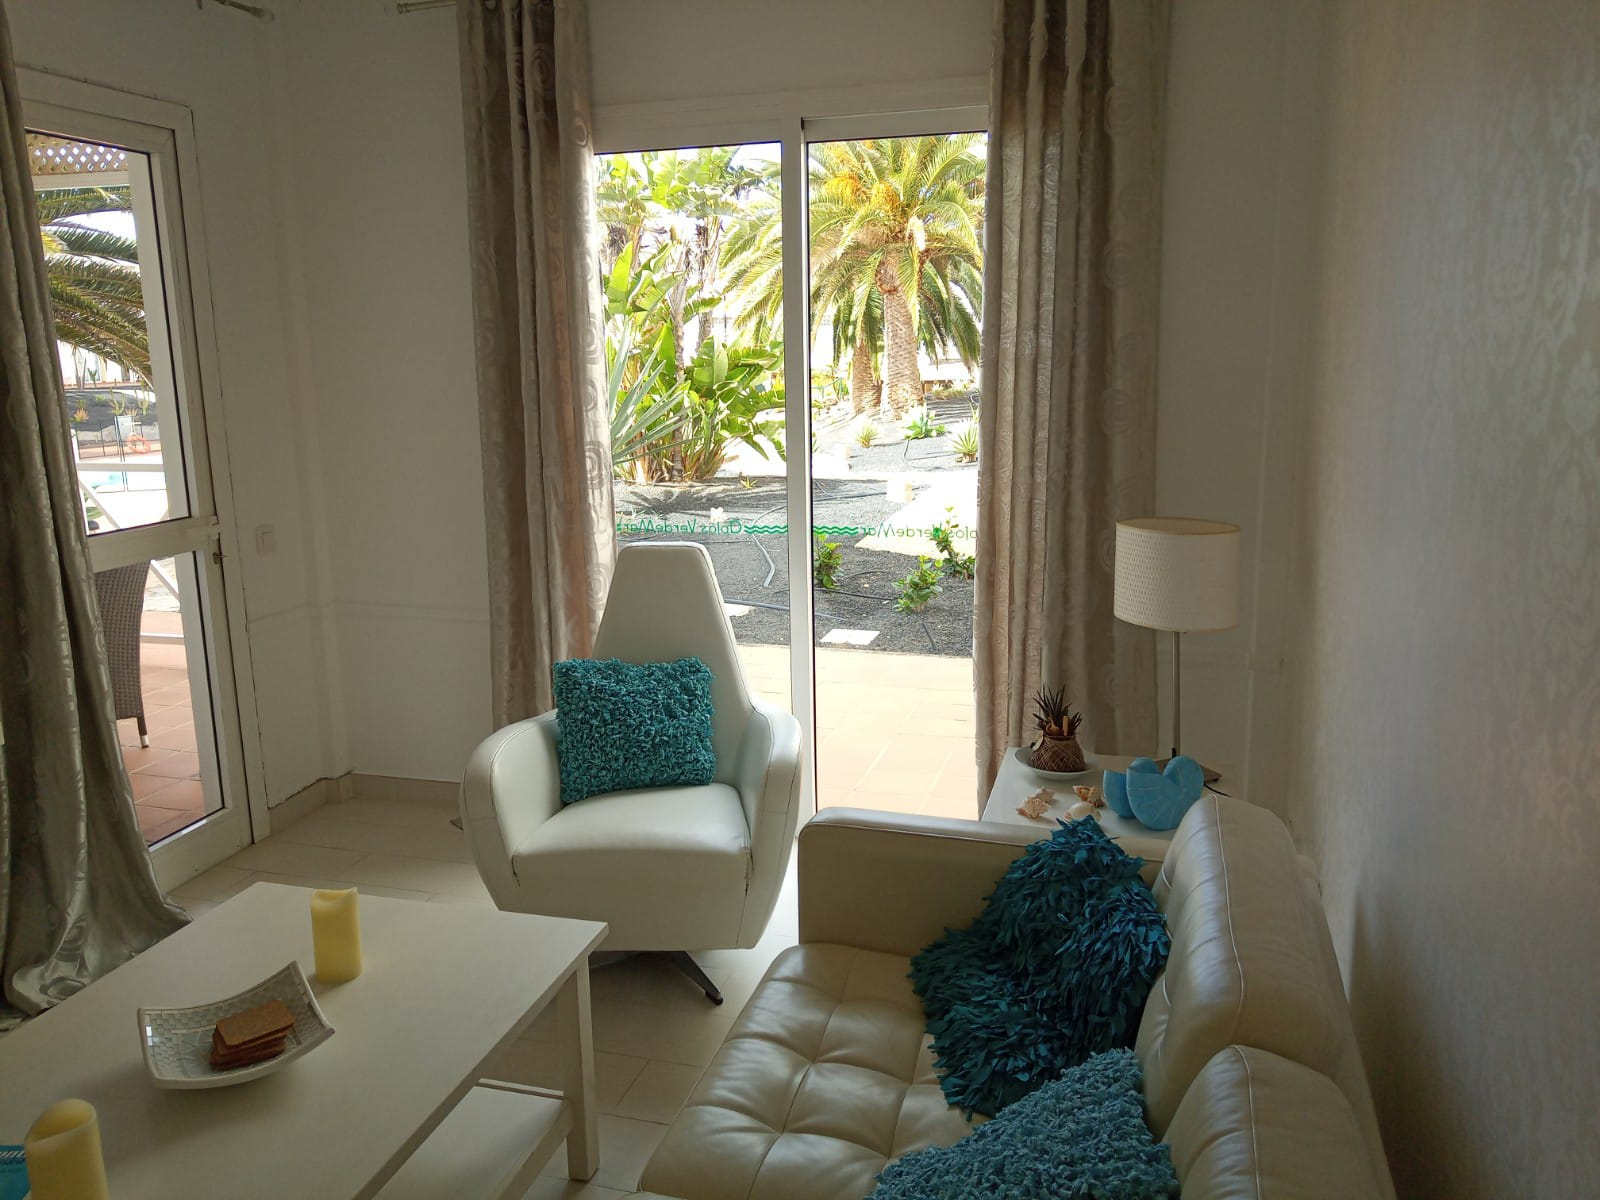 Refurbished apartment in Verdemar